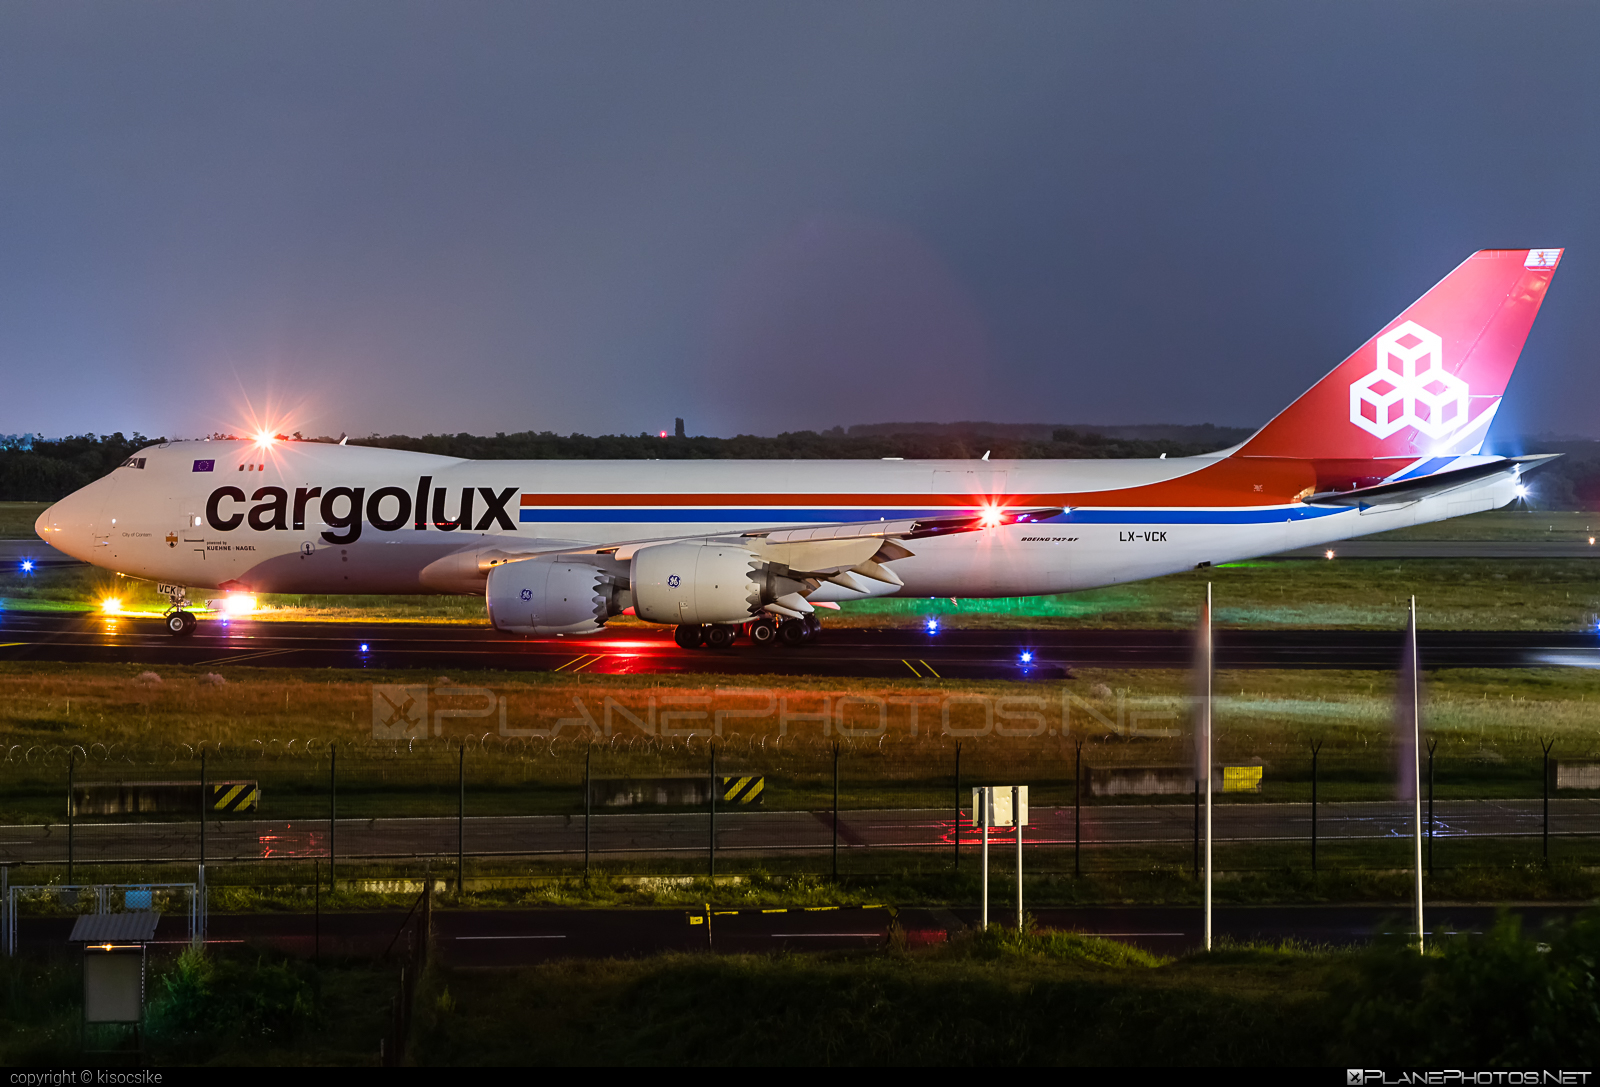 Boeing 747-8F - LX-VCK operated by Cargolux Airlines International #b747 #b747f #b747freighter #boeing #boeing747 #cargolux #jumbo